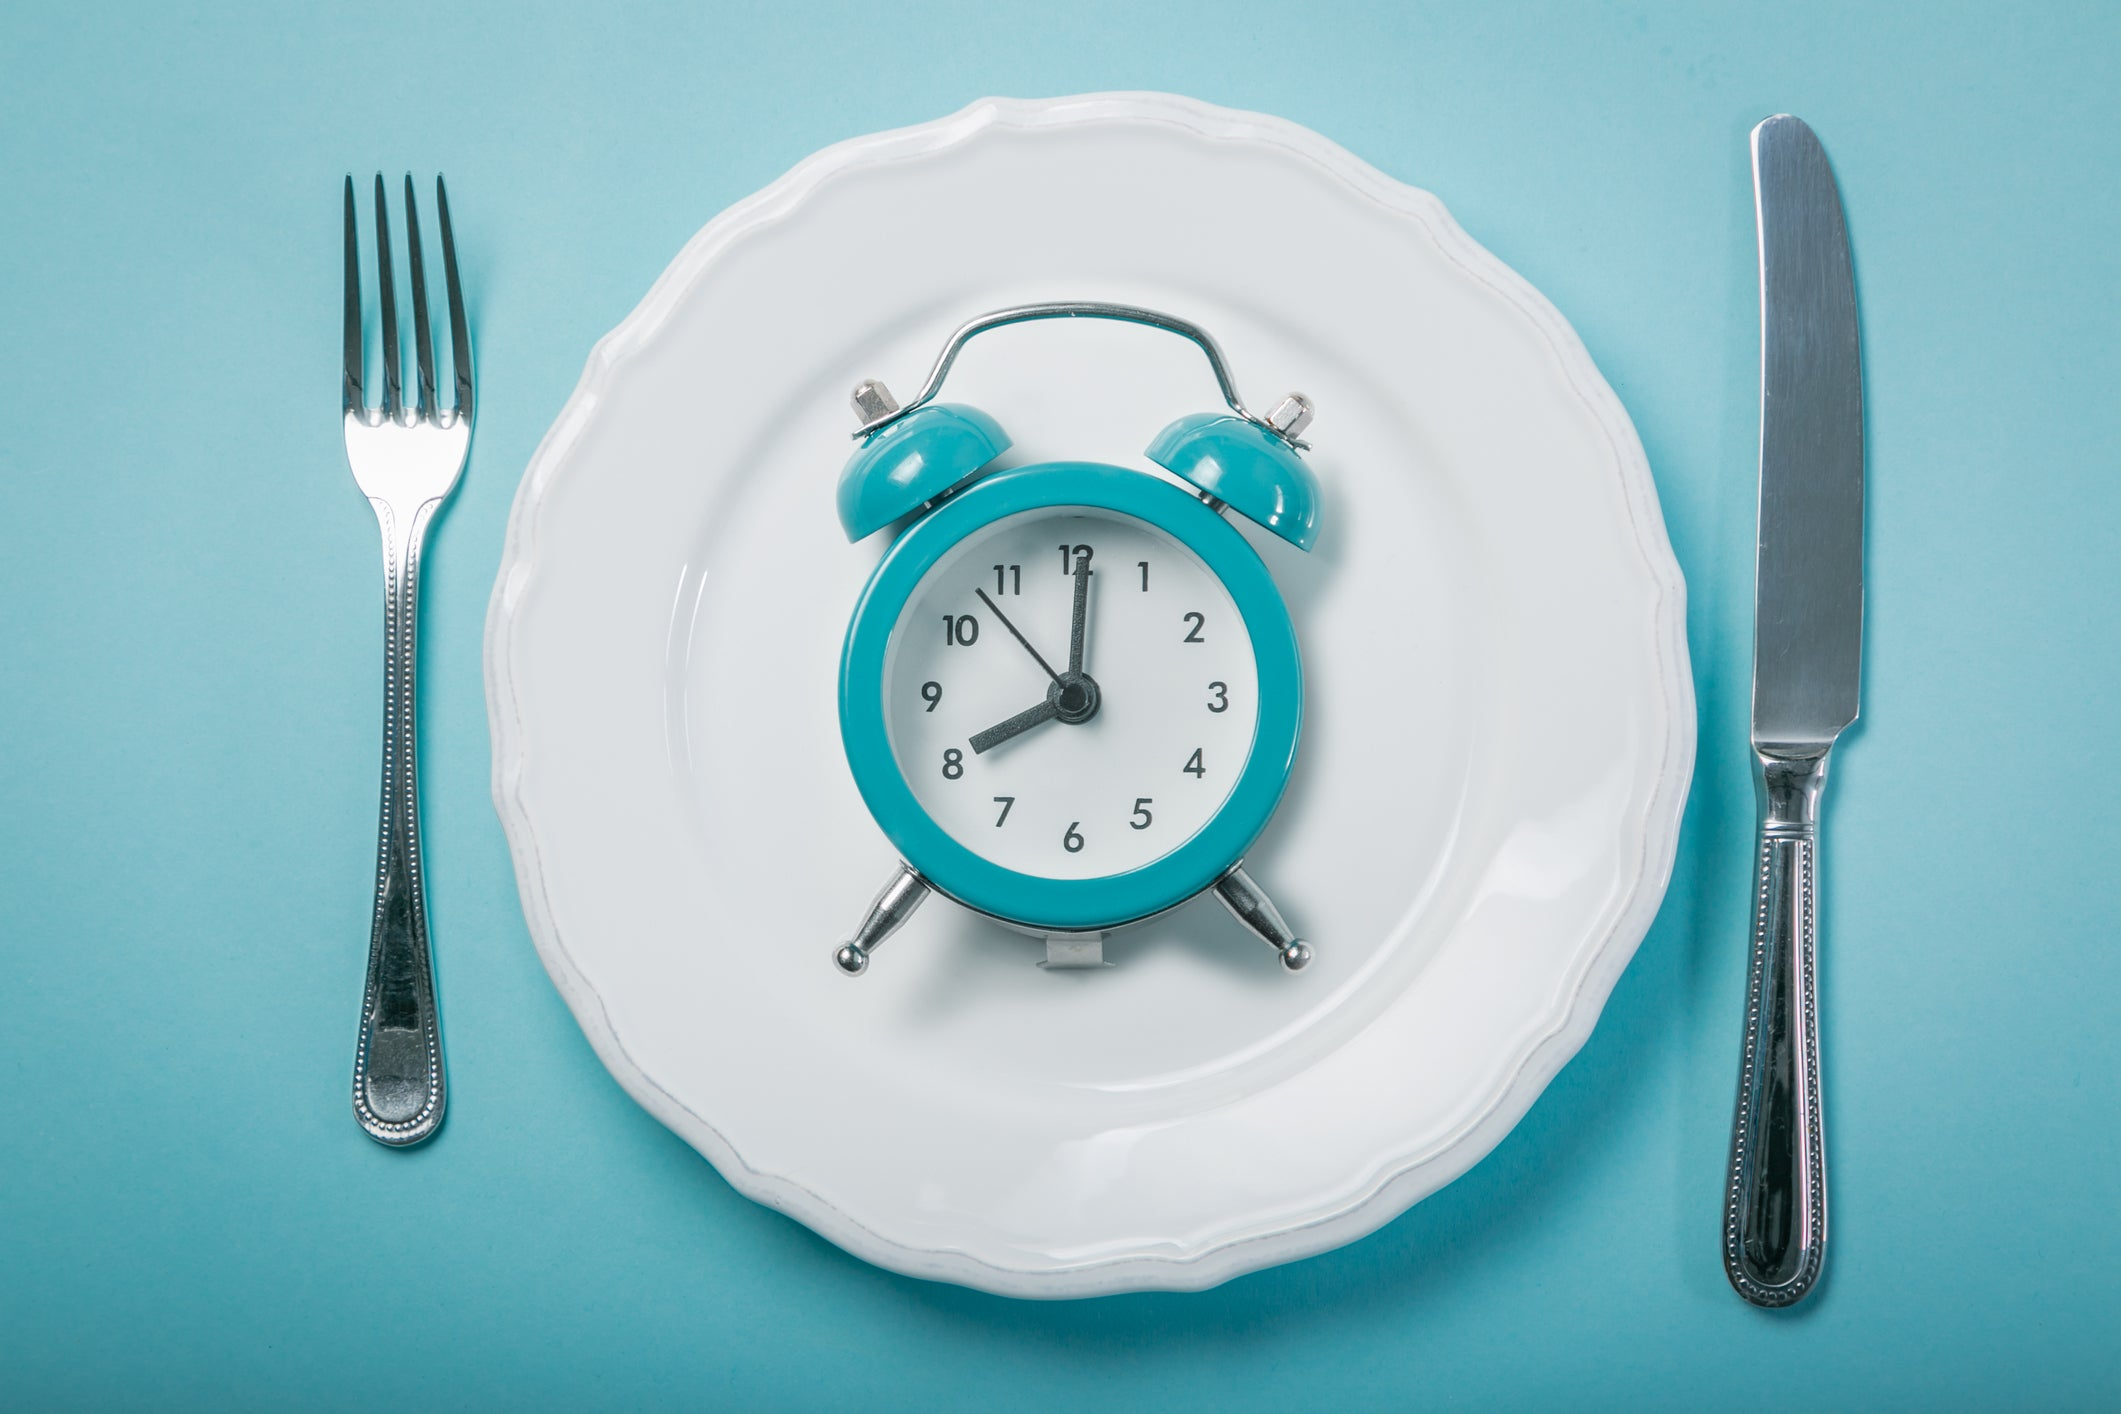 How To Start Intermittent Fasting and Some of The Reasons Why?